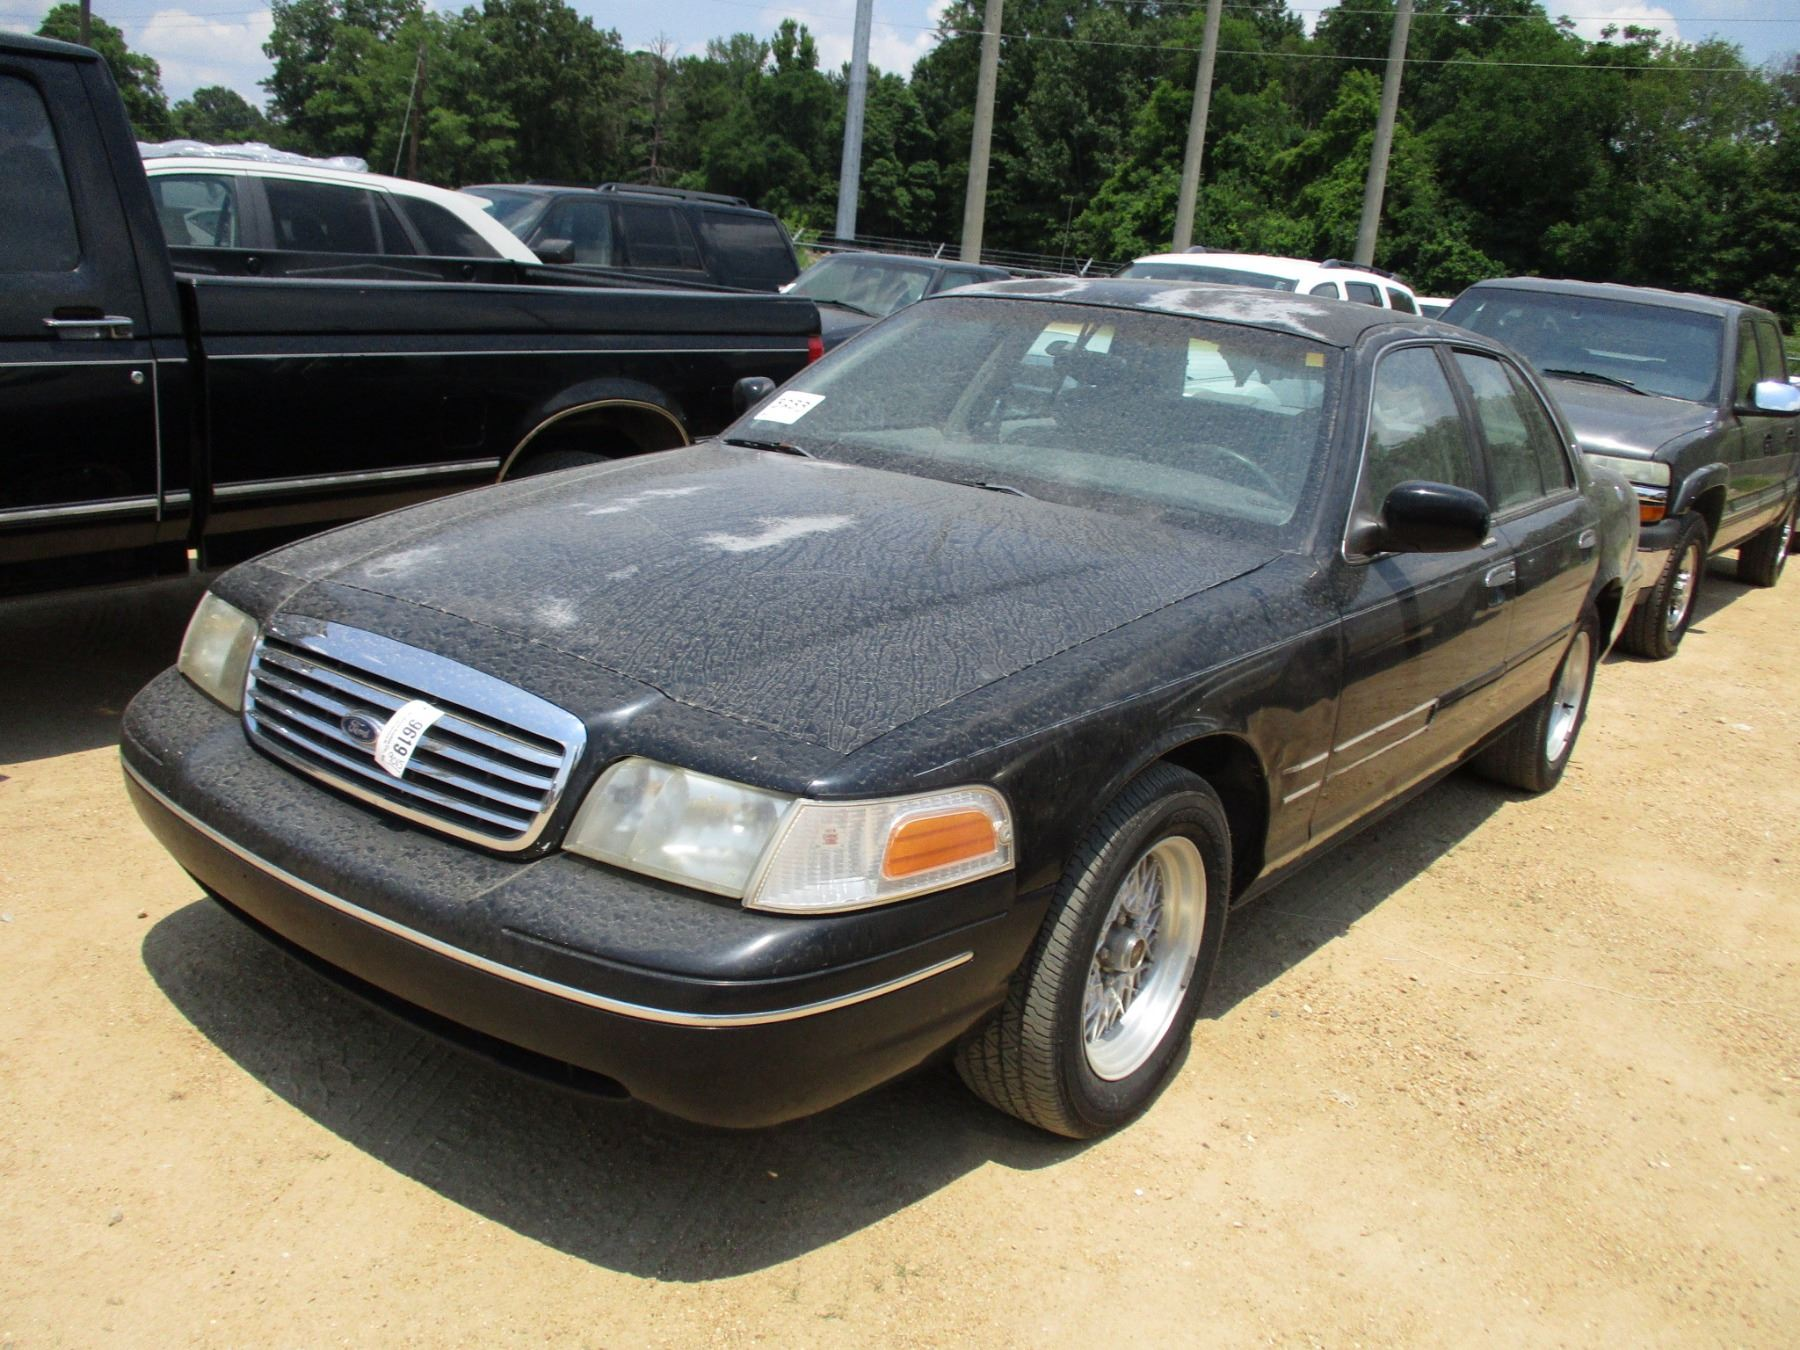 1998 crown victoria engine